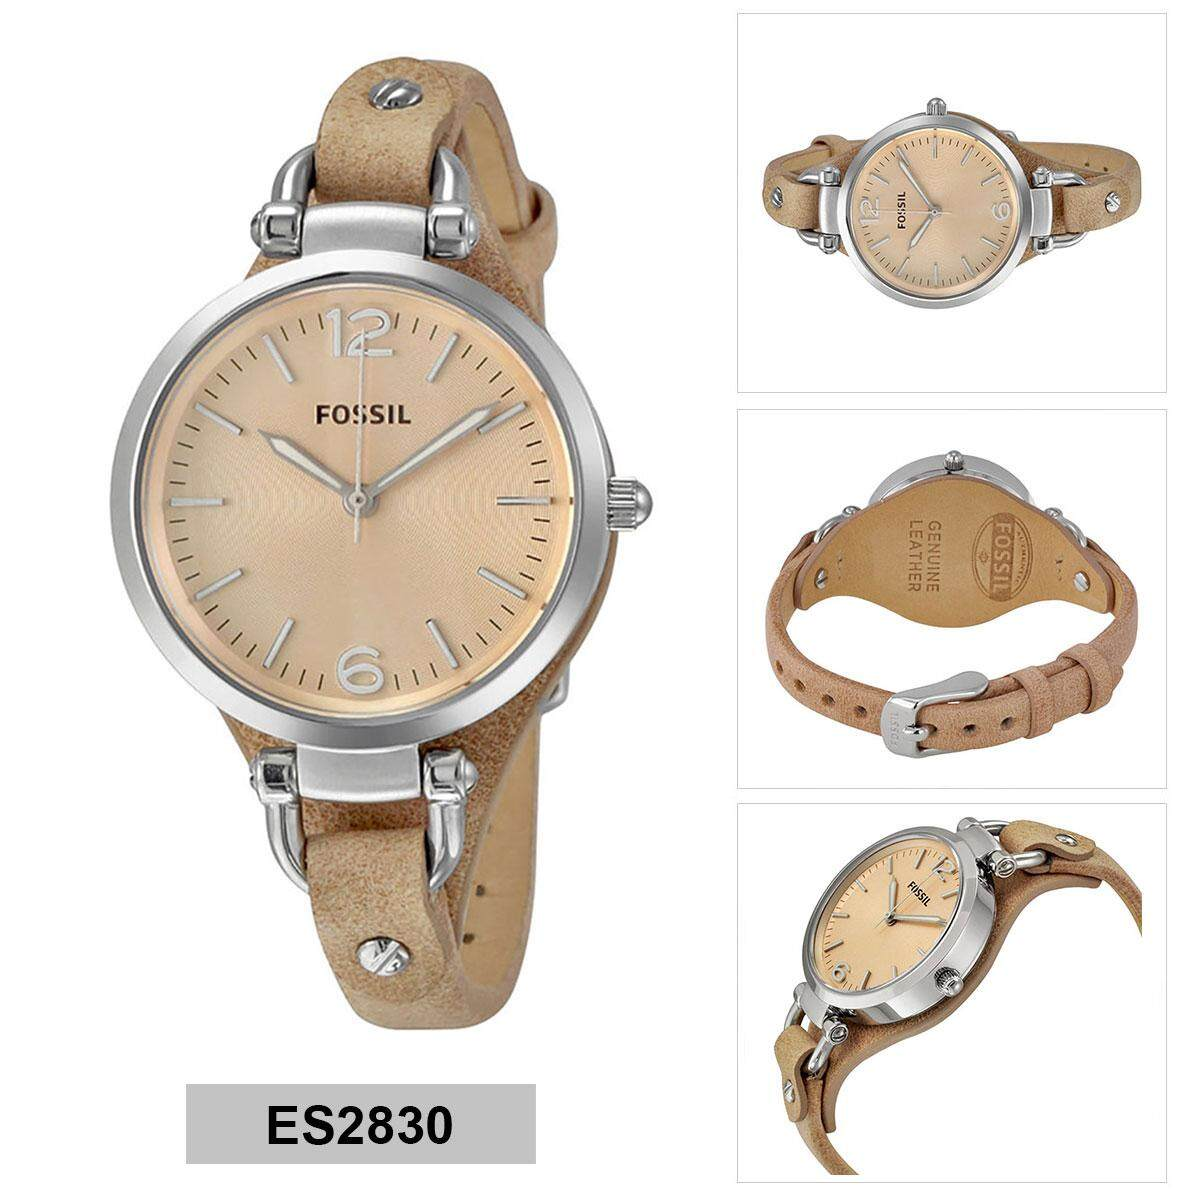 Fitur Fossil Es2830 Analog Peach Dial Womens Watch Dan Harga Terbaru Es3707 Jacqueline Gray Leather Rose Gold Georgia Brown Stainless Steel Case Strap Ladies